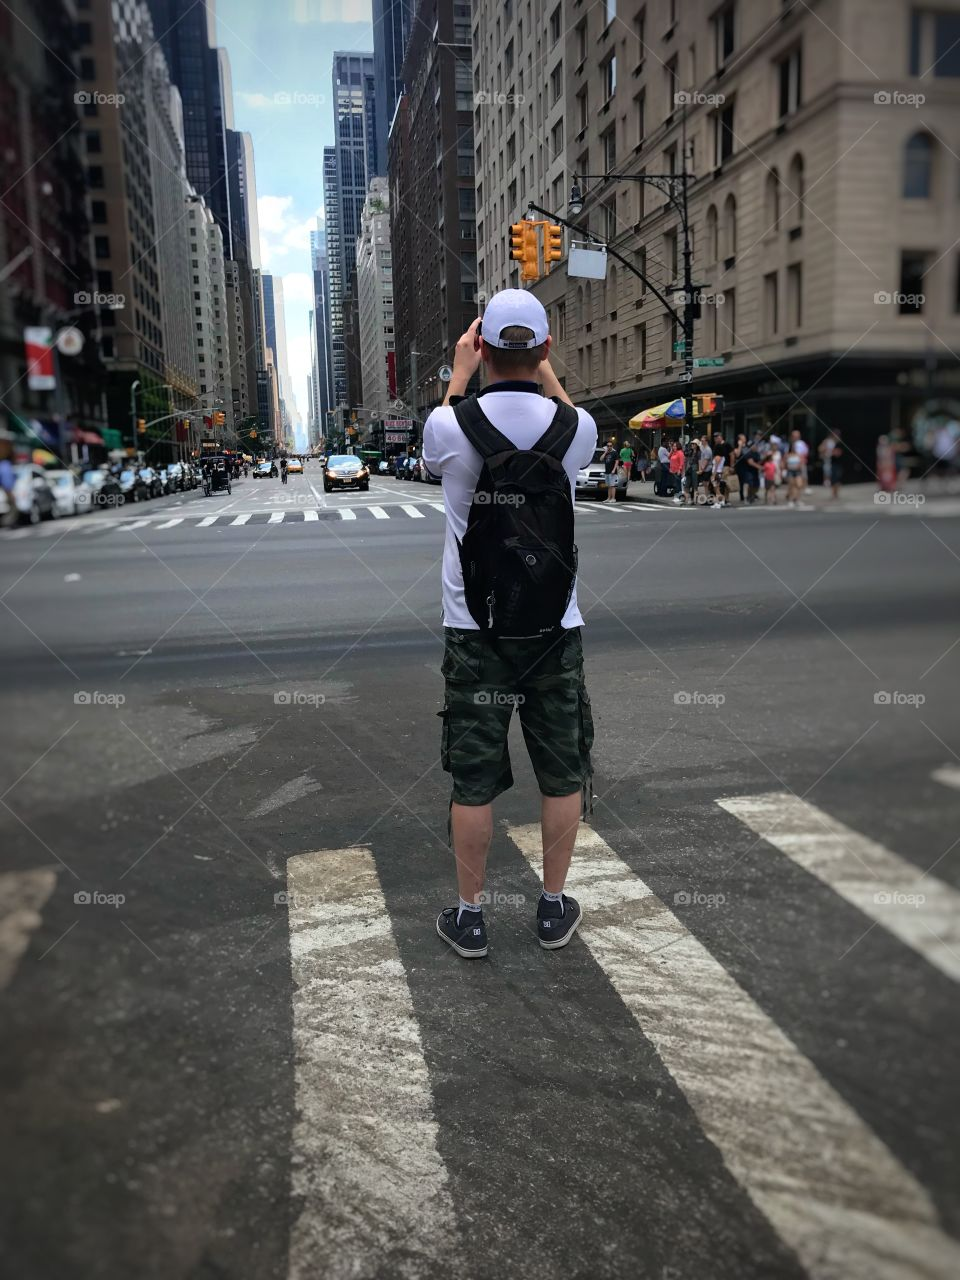 I love this image bc it puts the focus on another persons perspective rather than your own. It focuses on the man and his view of the city. The center focus is him and the view ahead of him, rather than the chaos that ensues around him.